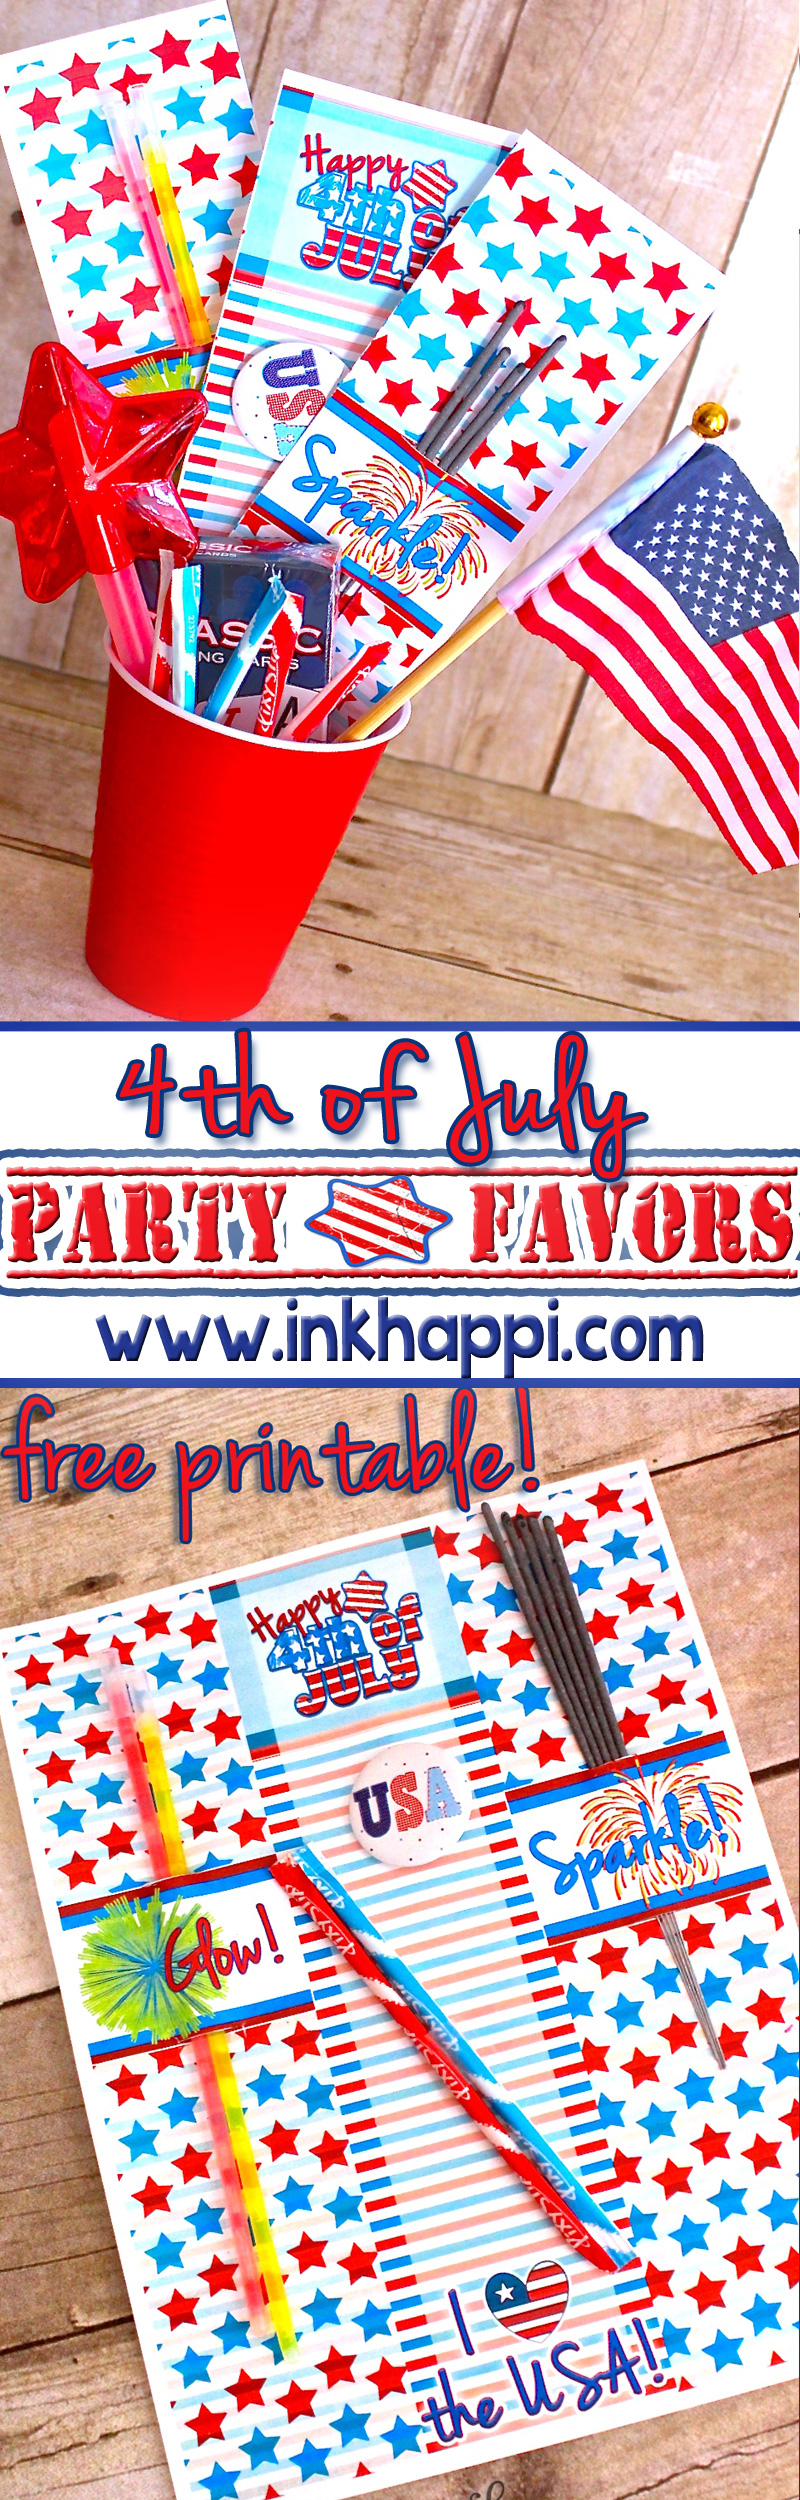 4th of july party favors 4of july 4th of july party favors with printable sparkler and glow stick holders party favors cheap easy diy inkhappi